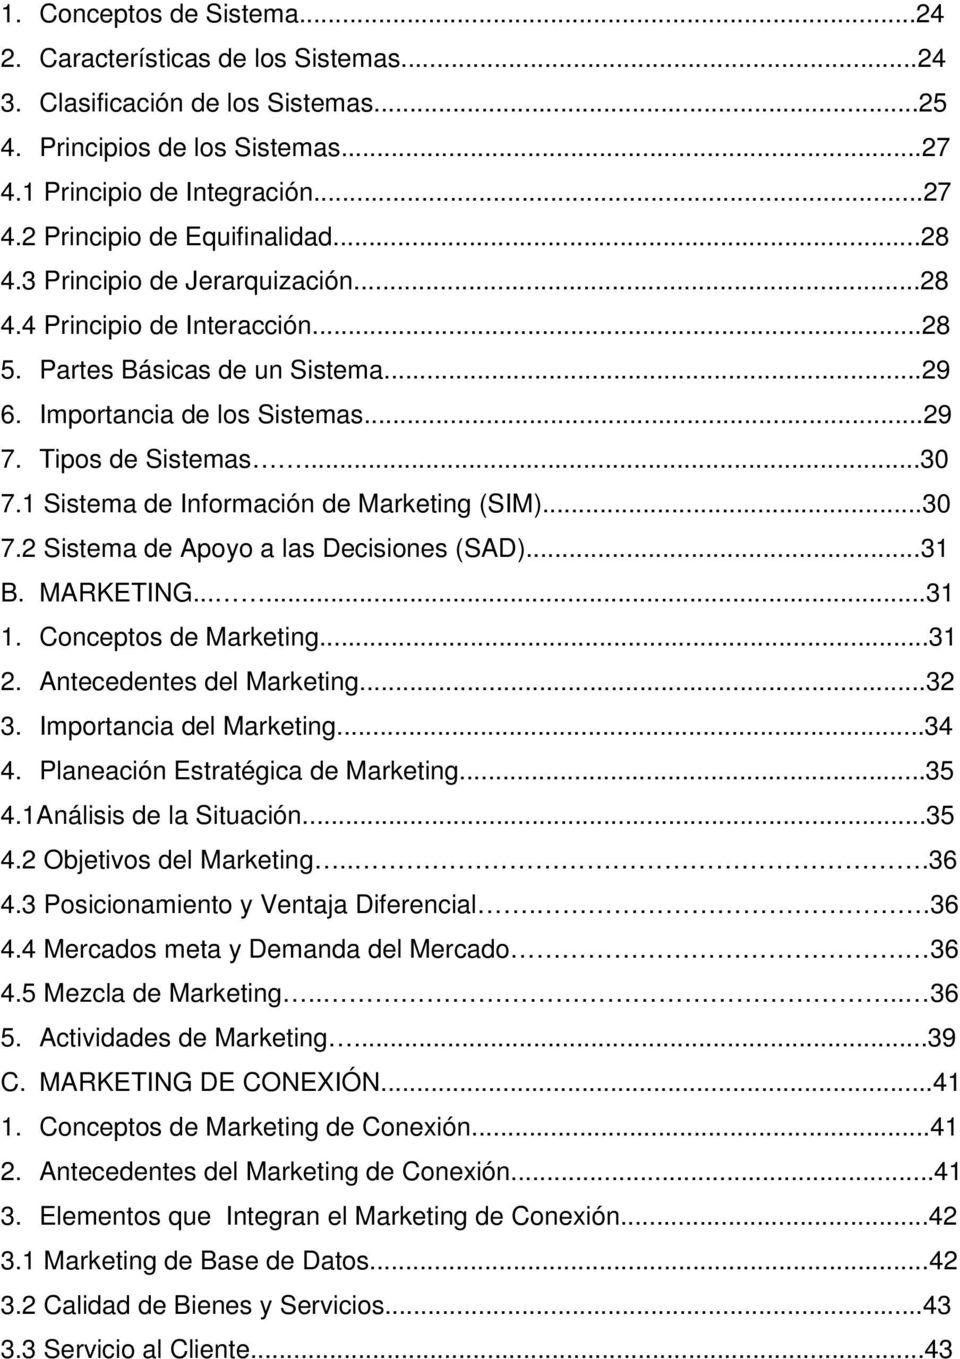 1 Sistema de Información de Marketing (SIM)...30 7.2 Sistema de Apoyo a las Decisiones (SAD)...31 B. MARKETING......31 1. Conceptos de Marketing...31 2. Antecedentes del Marketing...32 3.